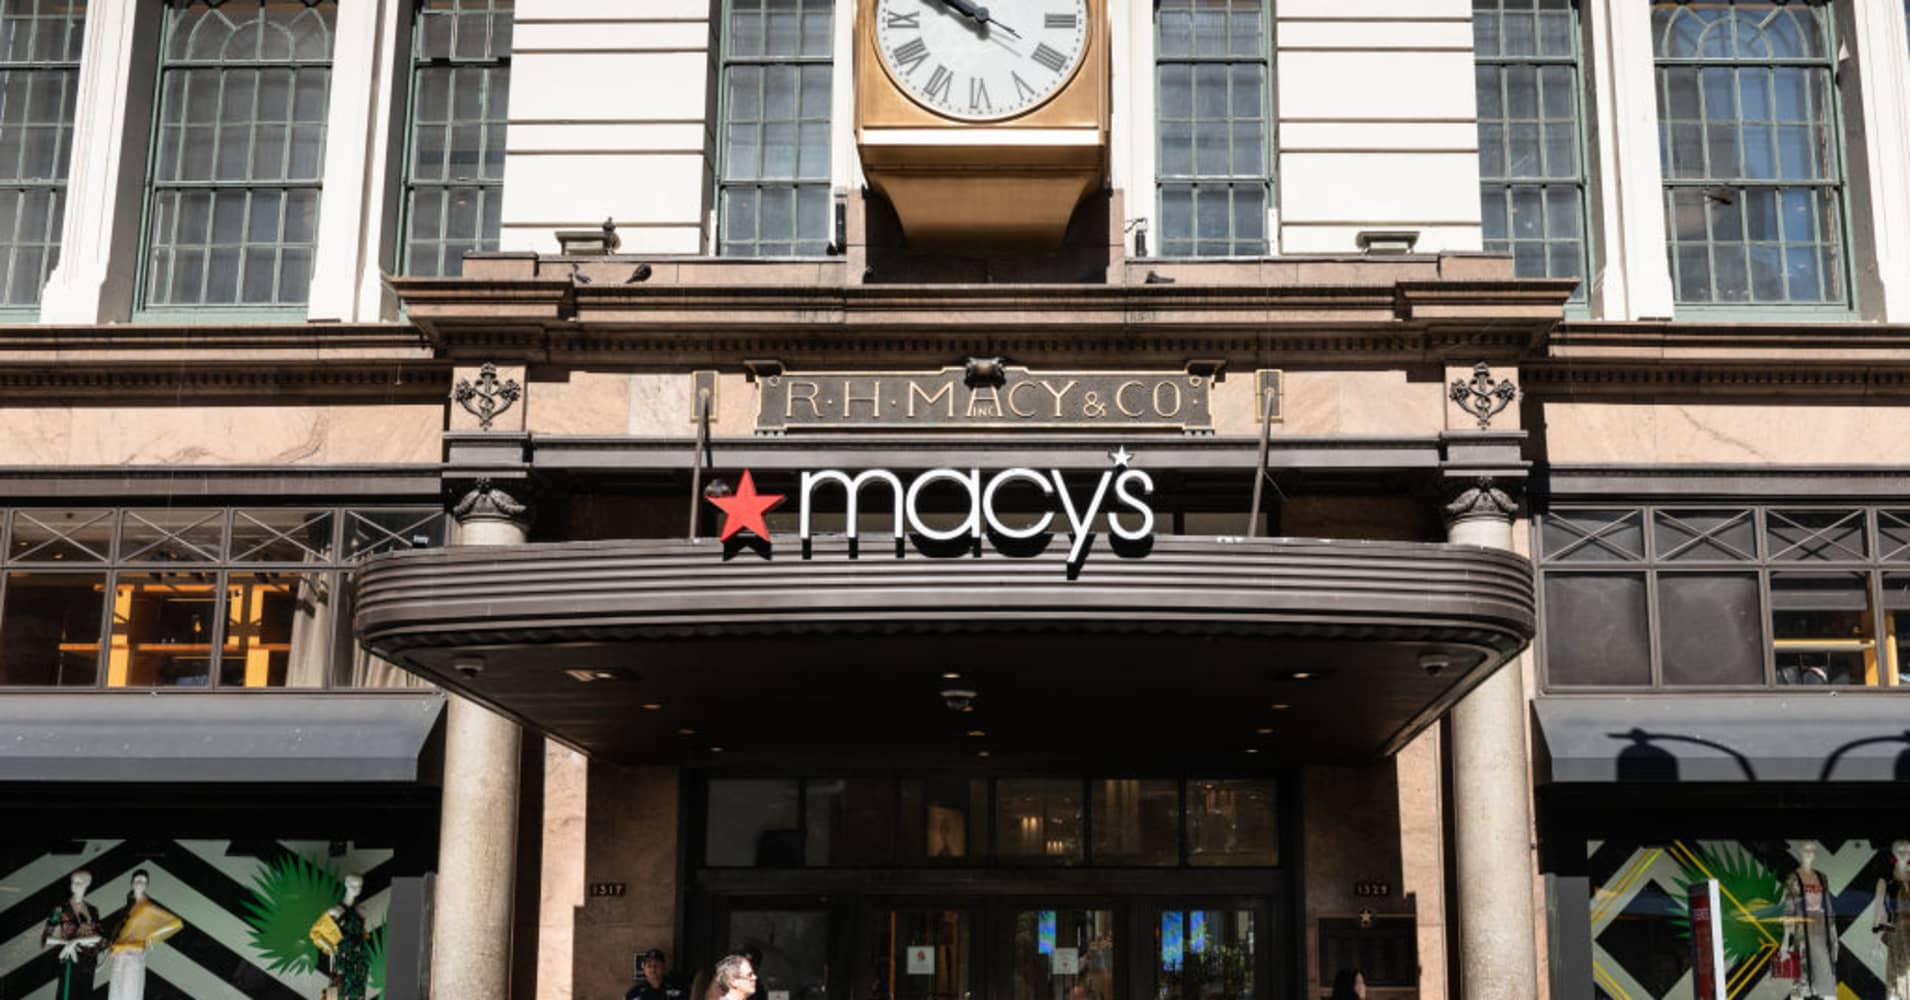 Goldman Sachs Sell Macys Shares As Turnaround Plan Is Insufficient